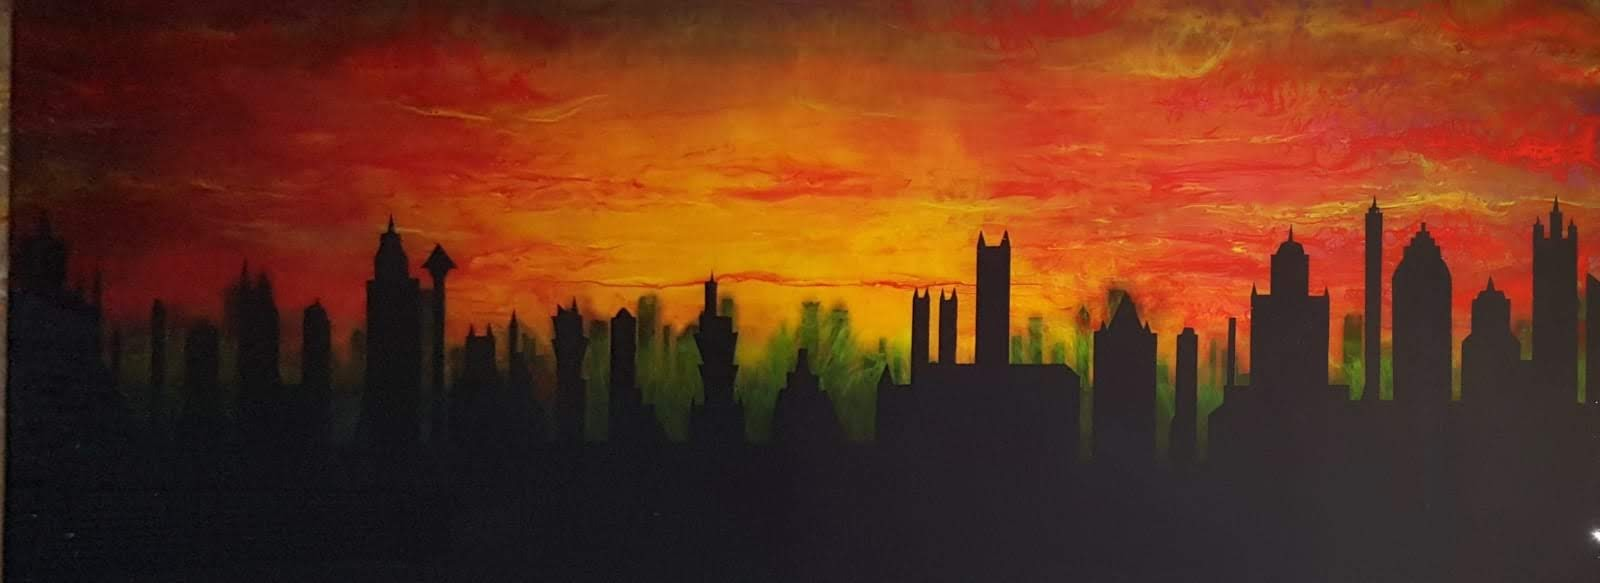 'Sunset Skyline'